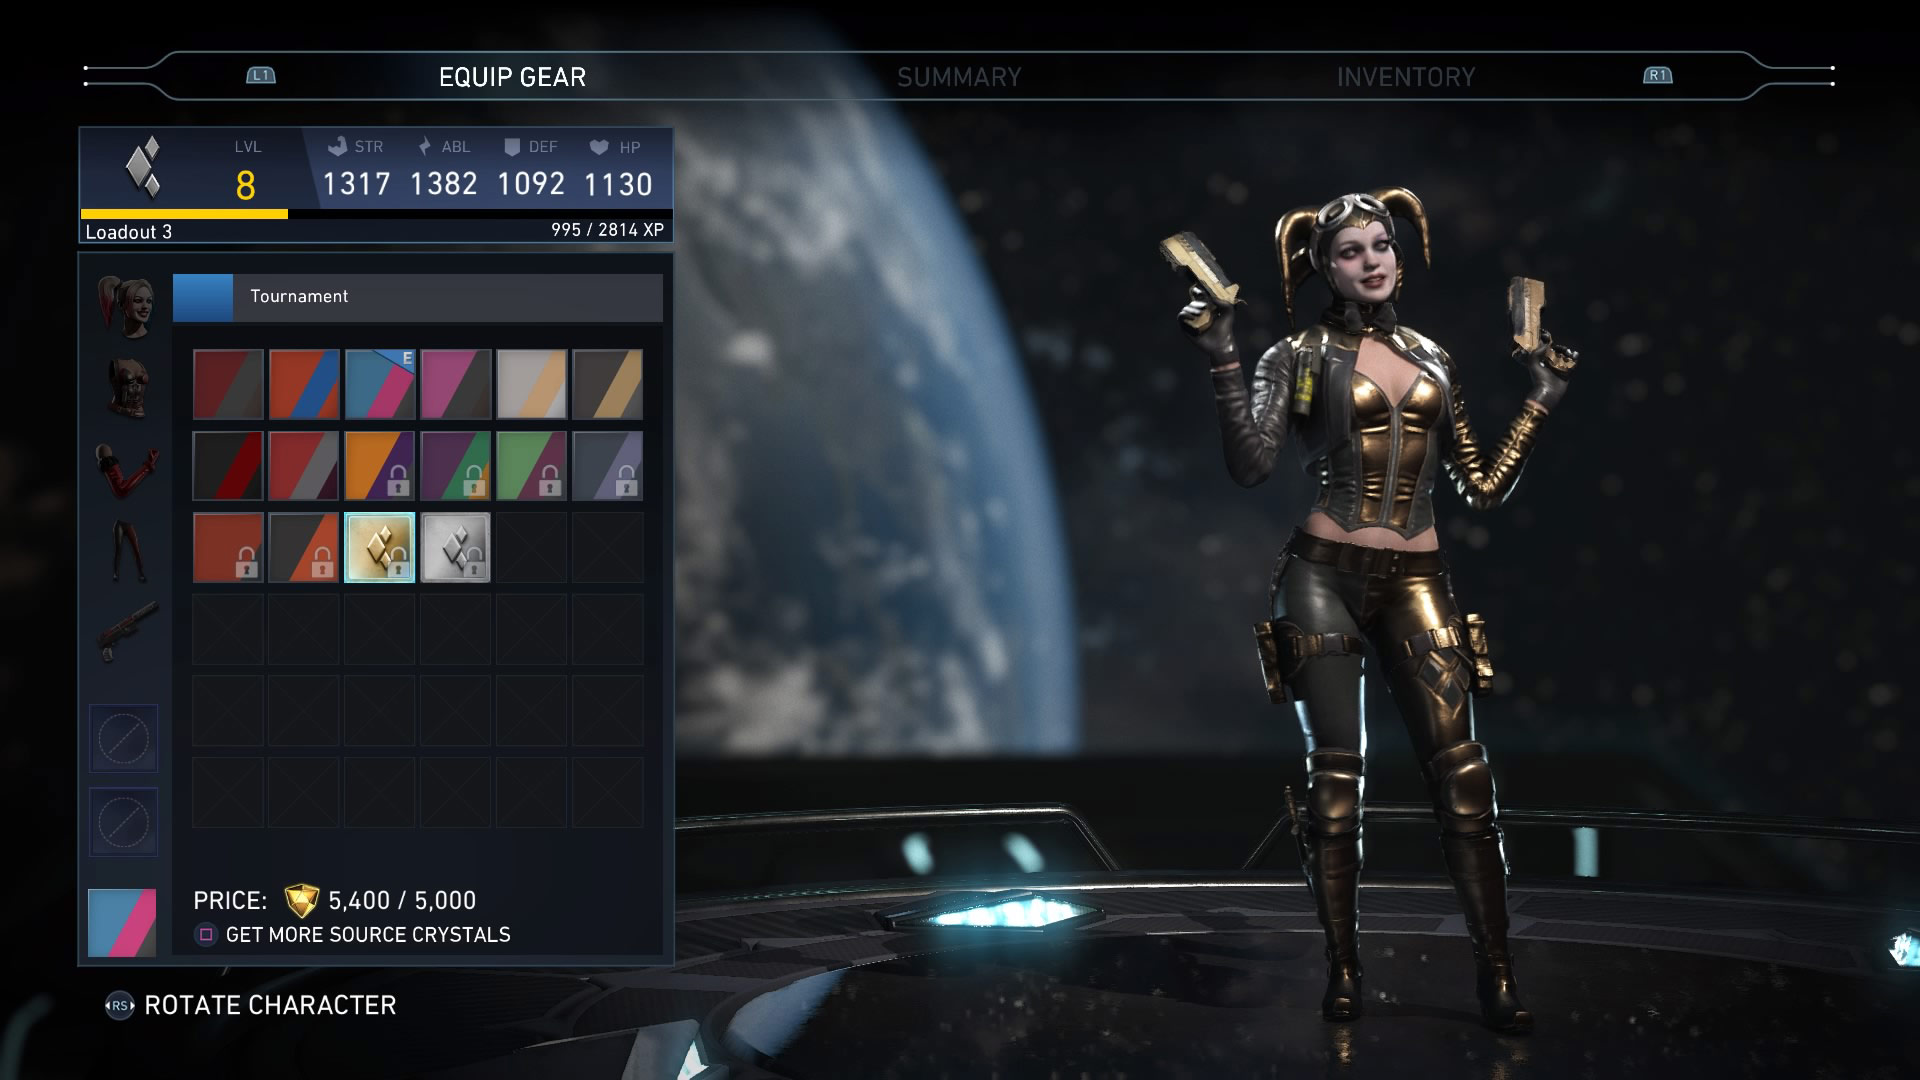 New shaders and Bizarro skin in Injustice 2 4 out of 6 image gallery